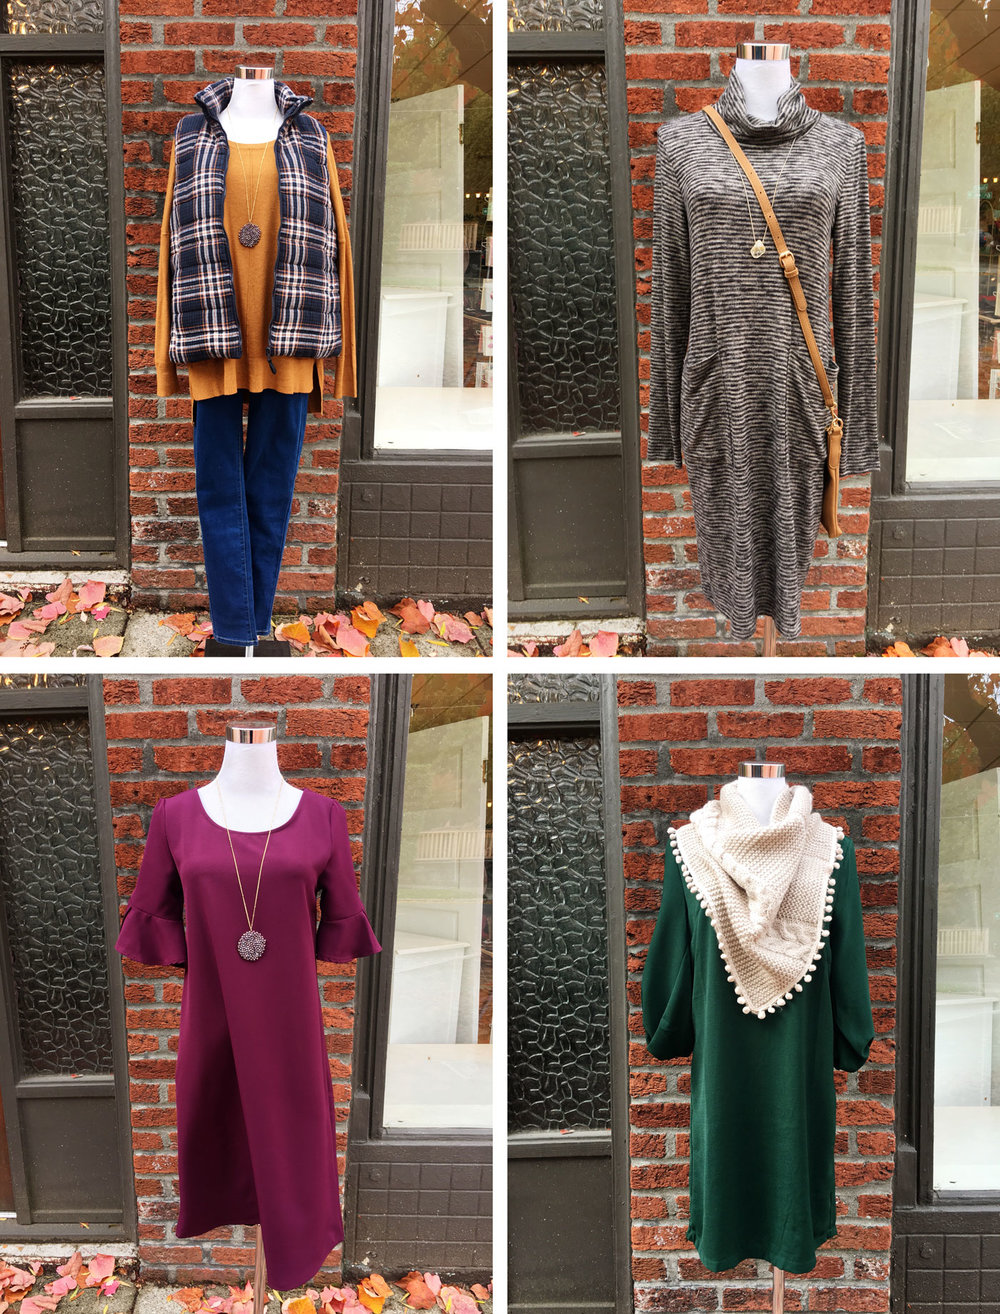 New Gilli dresses, Dreamers sweater and lots more for you to see!